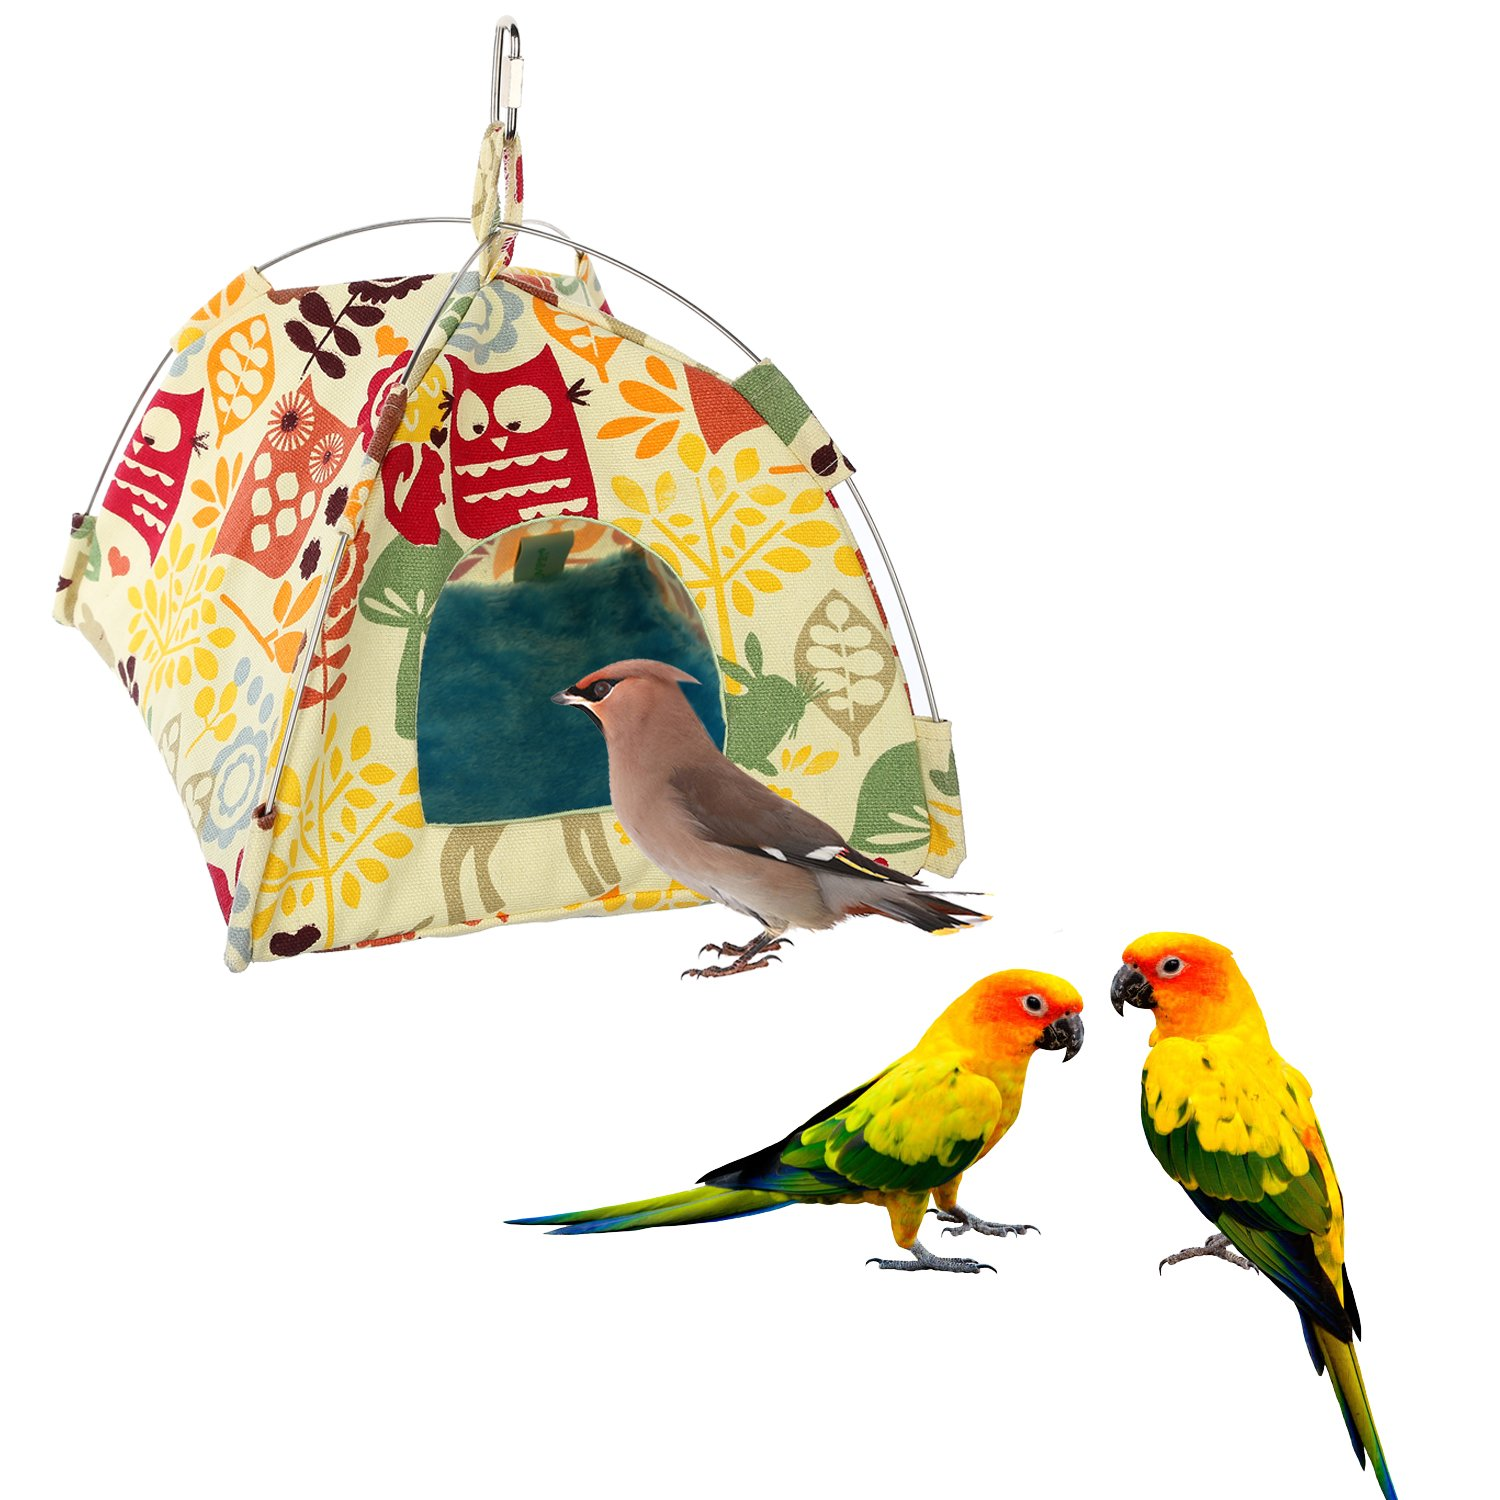 Jusney Bird toys Bird Hammock Parrot Hanging Tent Budgerigar Dual Layer Nest Parakeet Cave Tent for Medium Birds (Big)